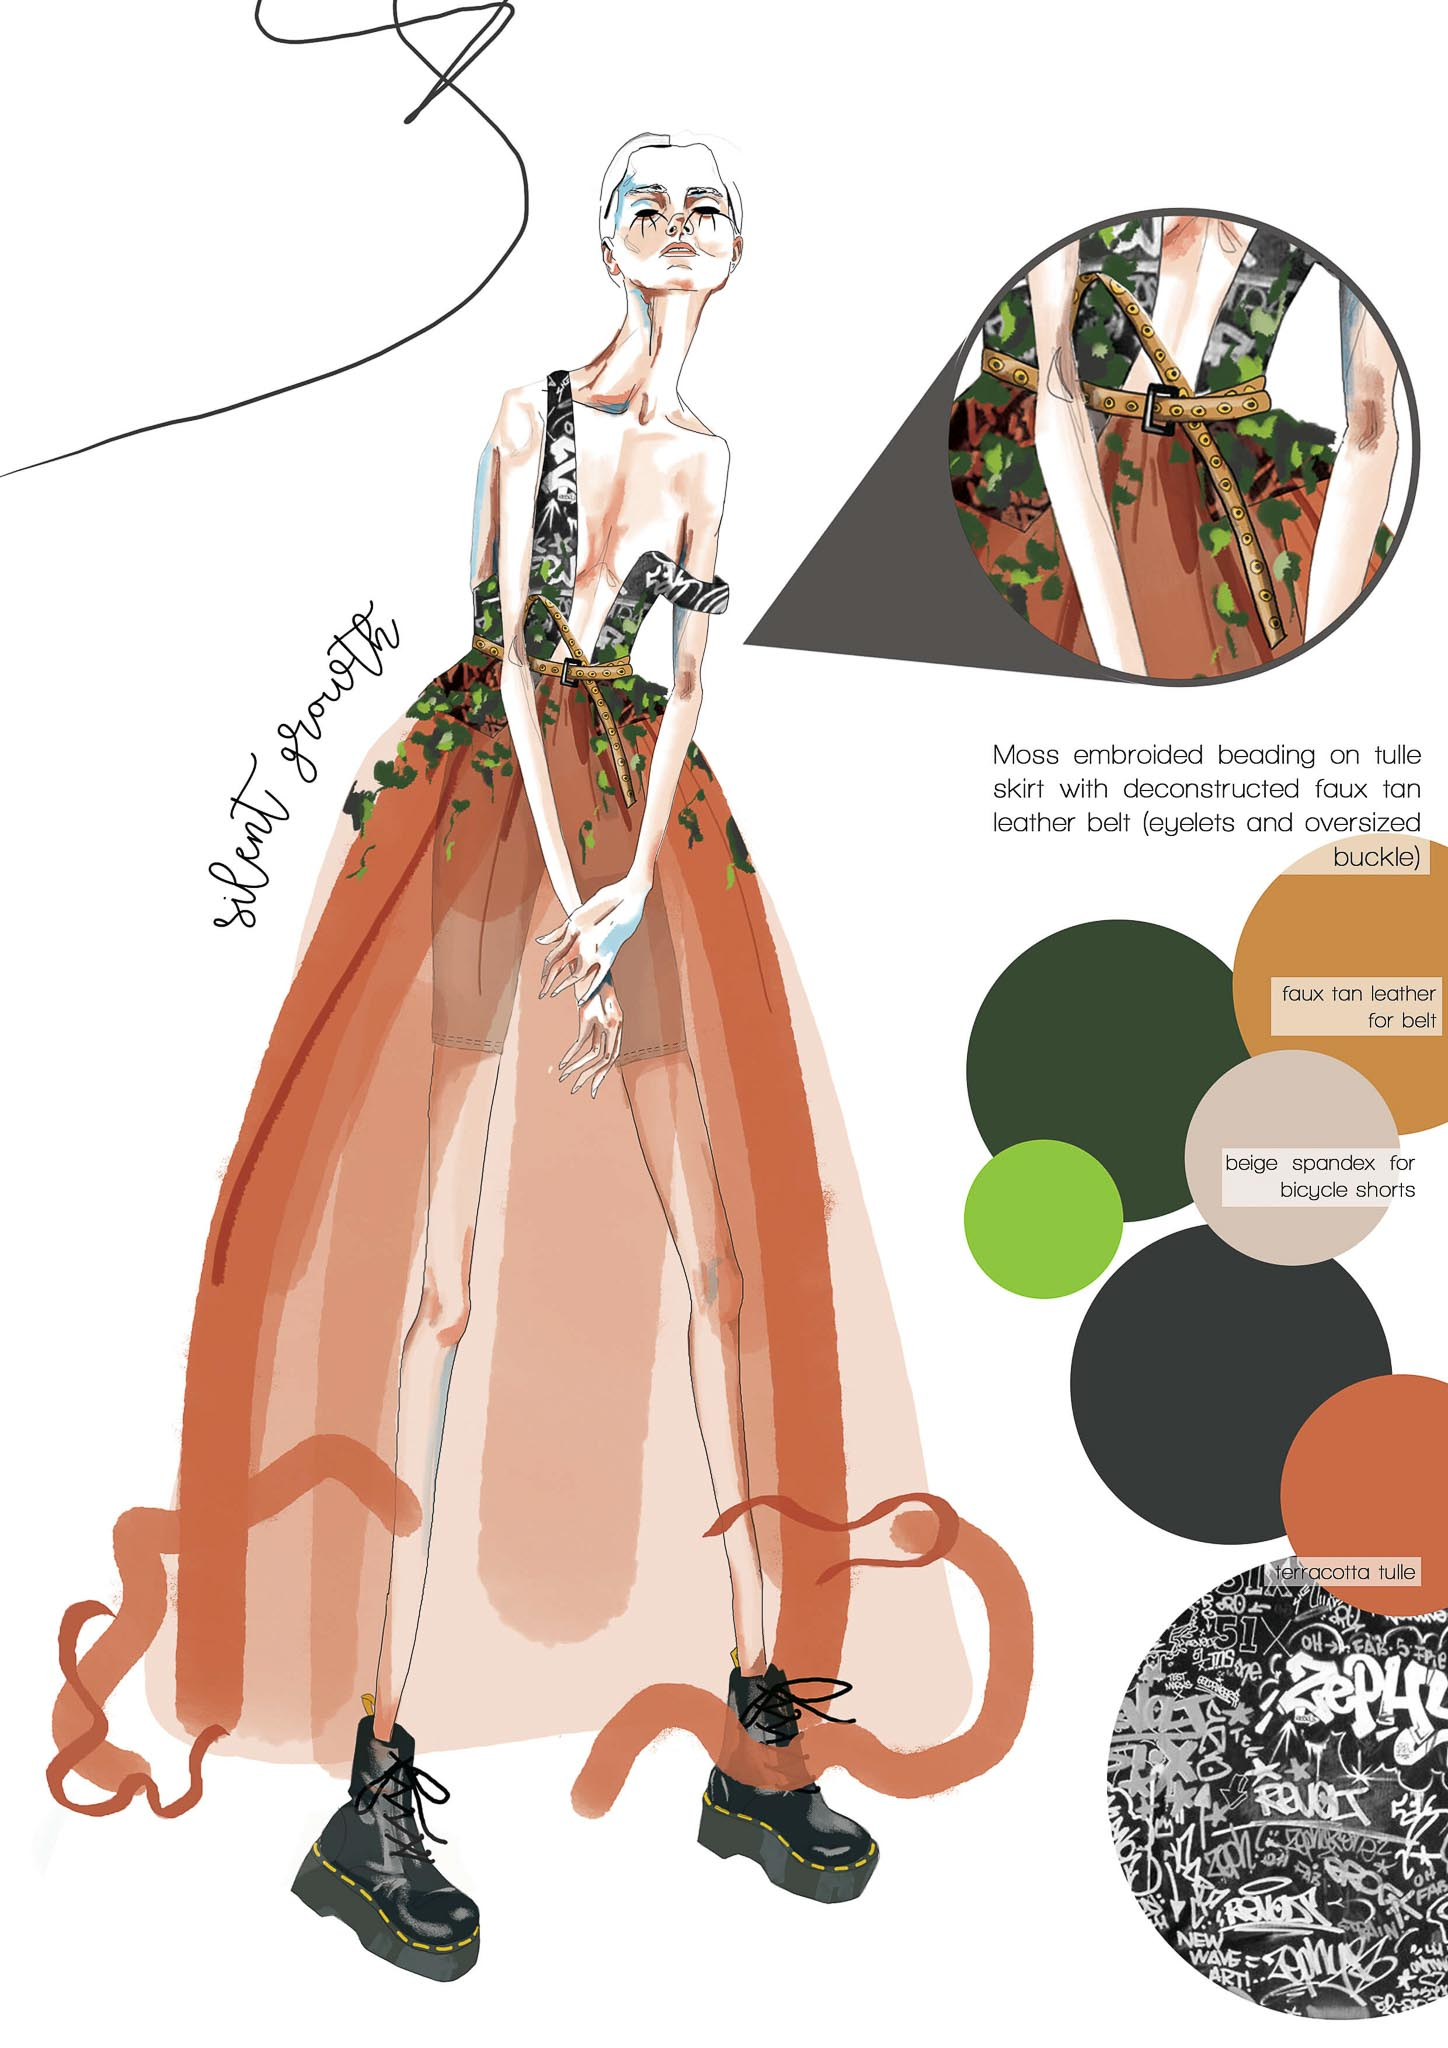 Silent Growth: Sarah Lane, South Africa, Student, Design Academy of Fashion (Create your Revolution)